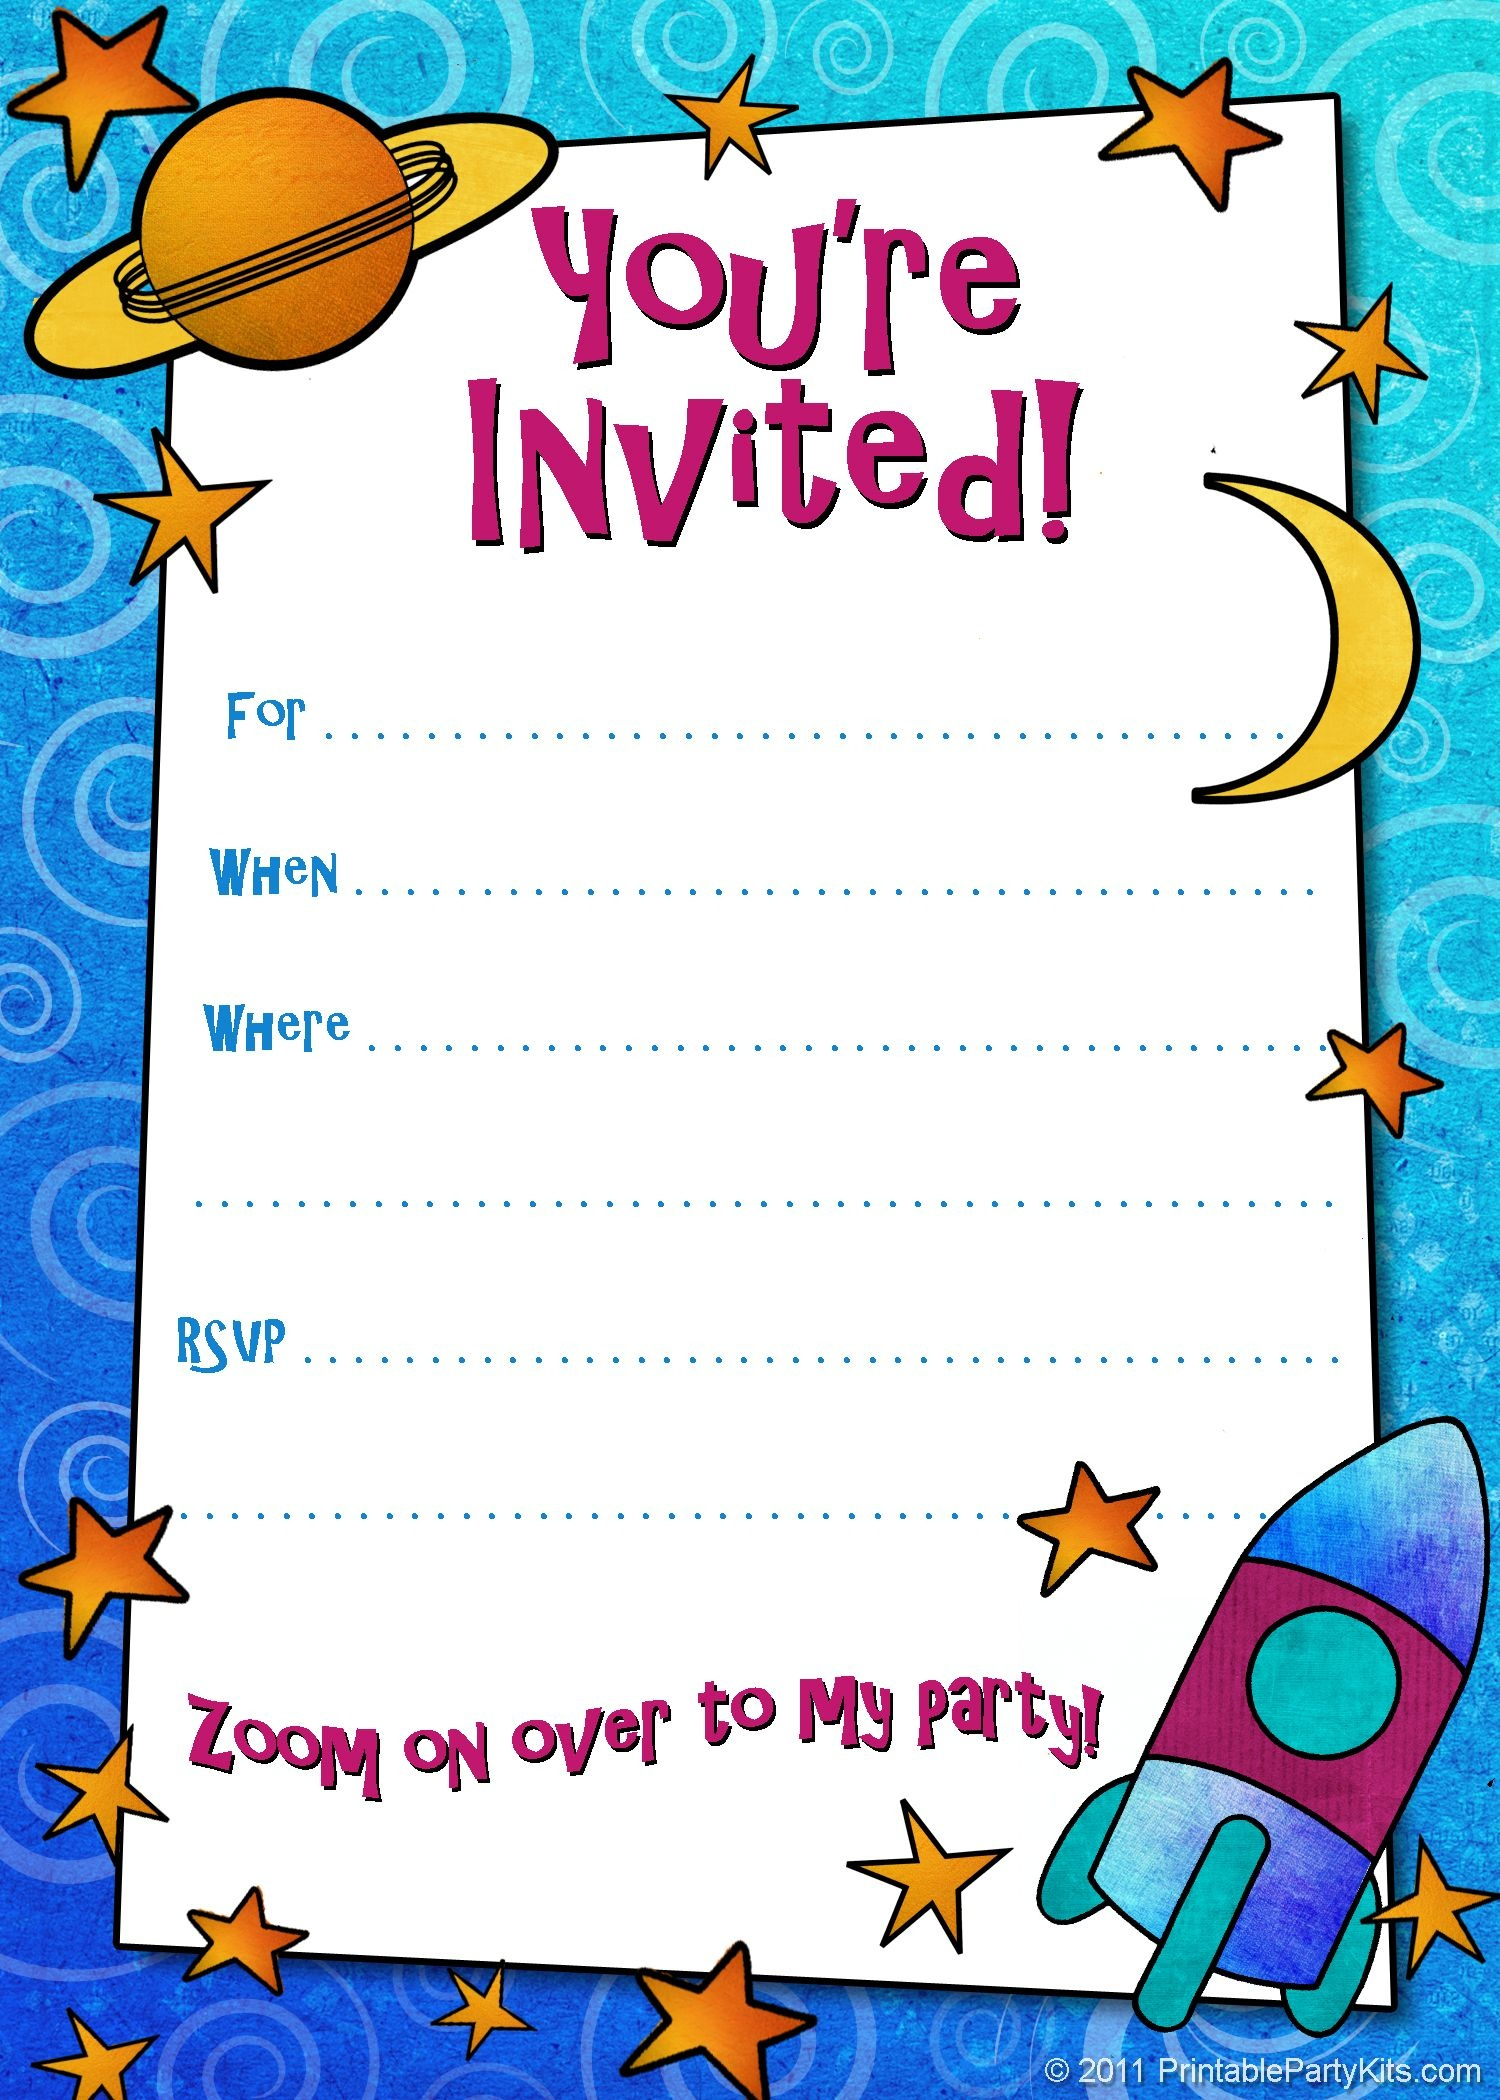 Free Printable Boys Birthday Party Invitations | Birthday Party - Free Printable Birthday Invitation Cards Templates